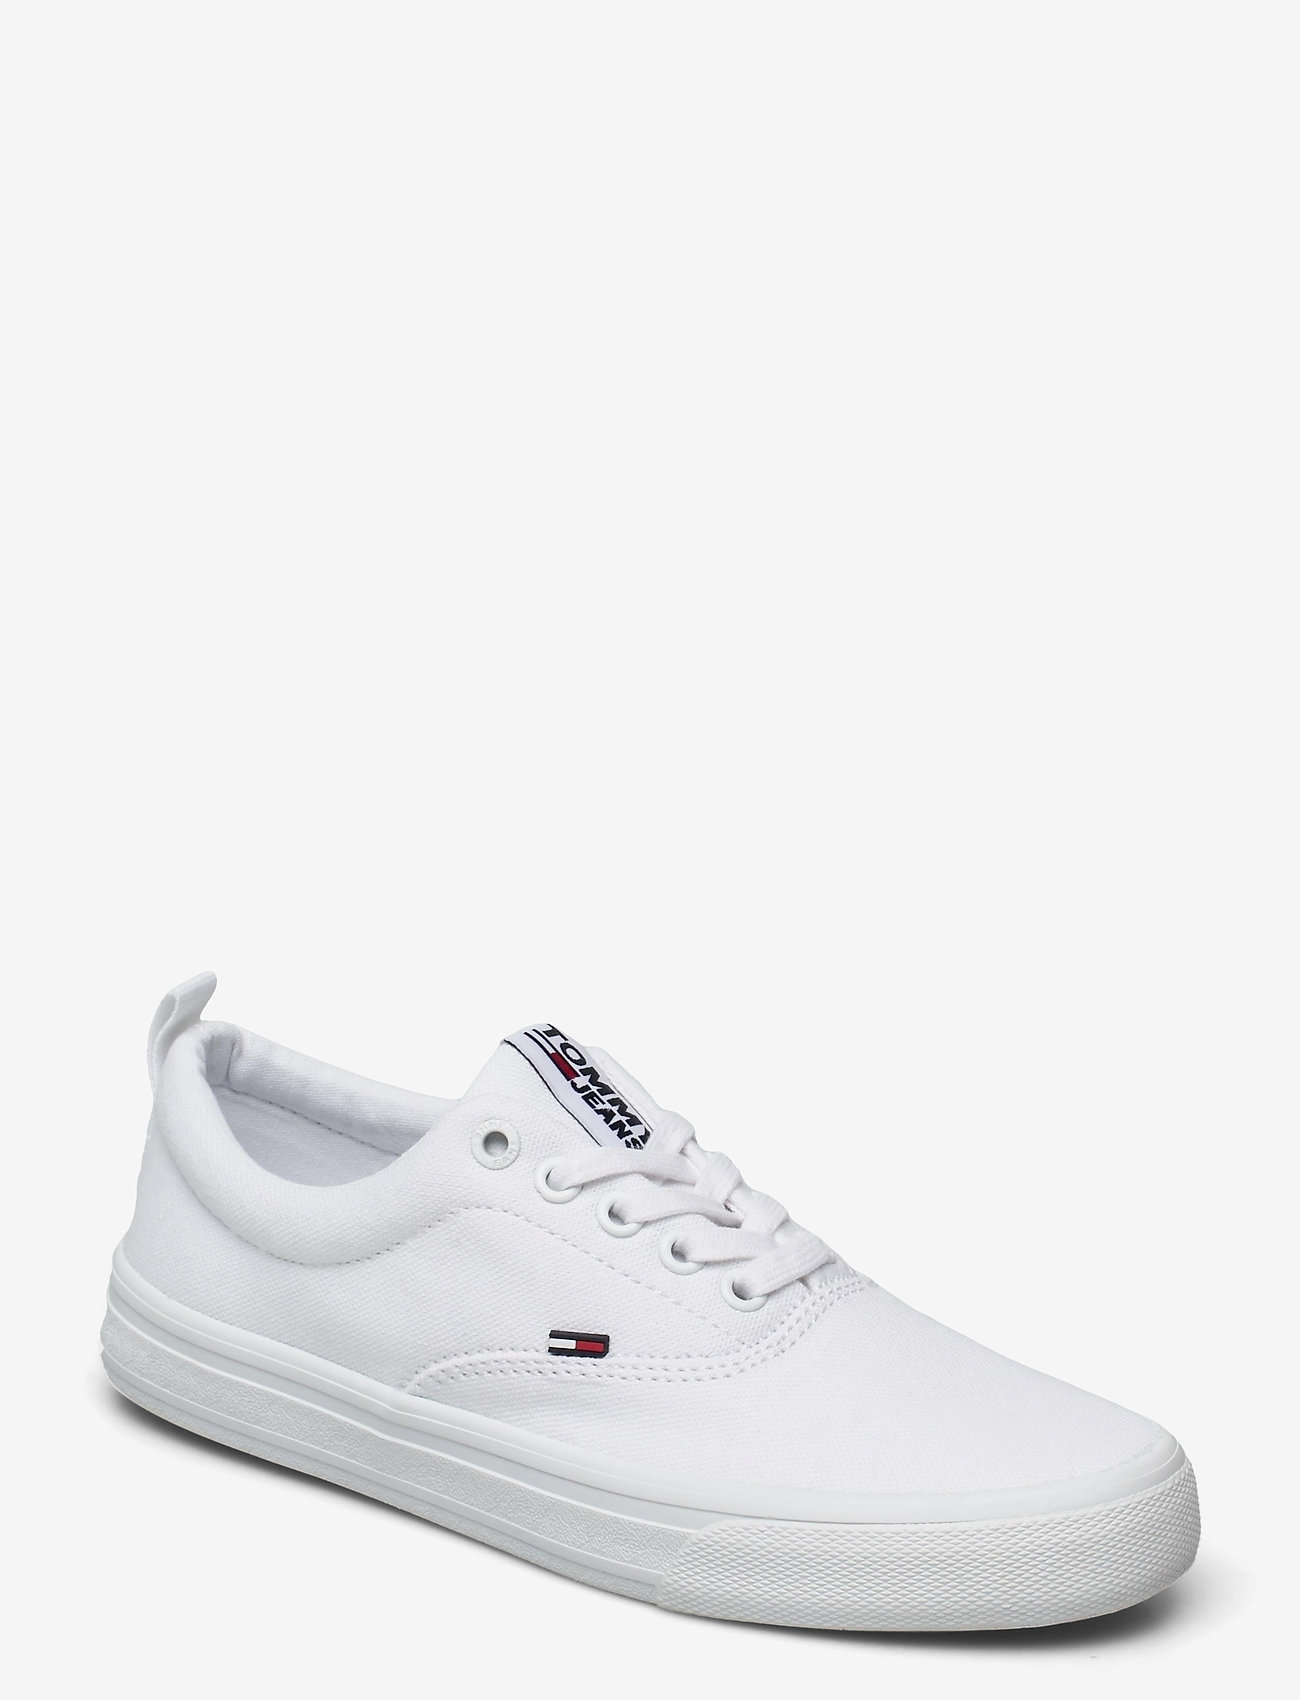 Tommy Hilfiger - WMN CLASSIC TOMMY JEANS SNEAKER - low top sneakers - white - 1